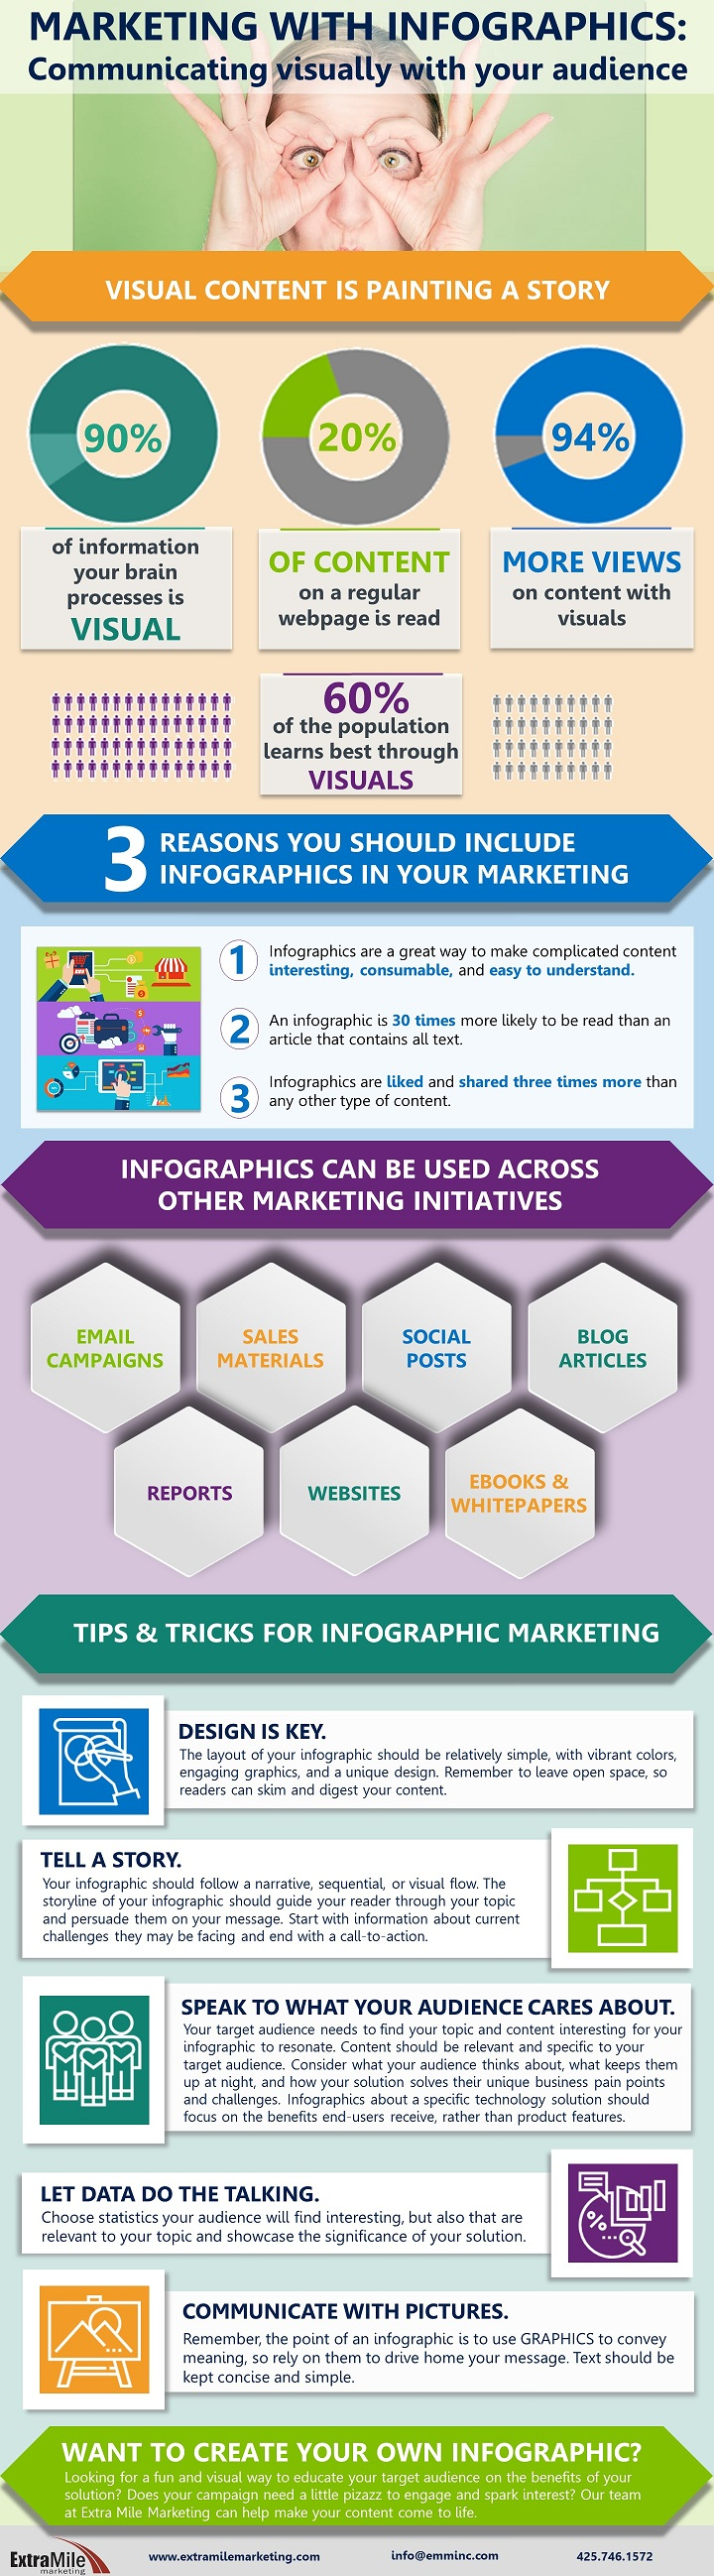 Infographics can be an effective part of your digital marketing strategy.